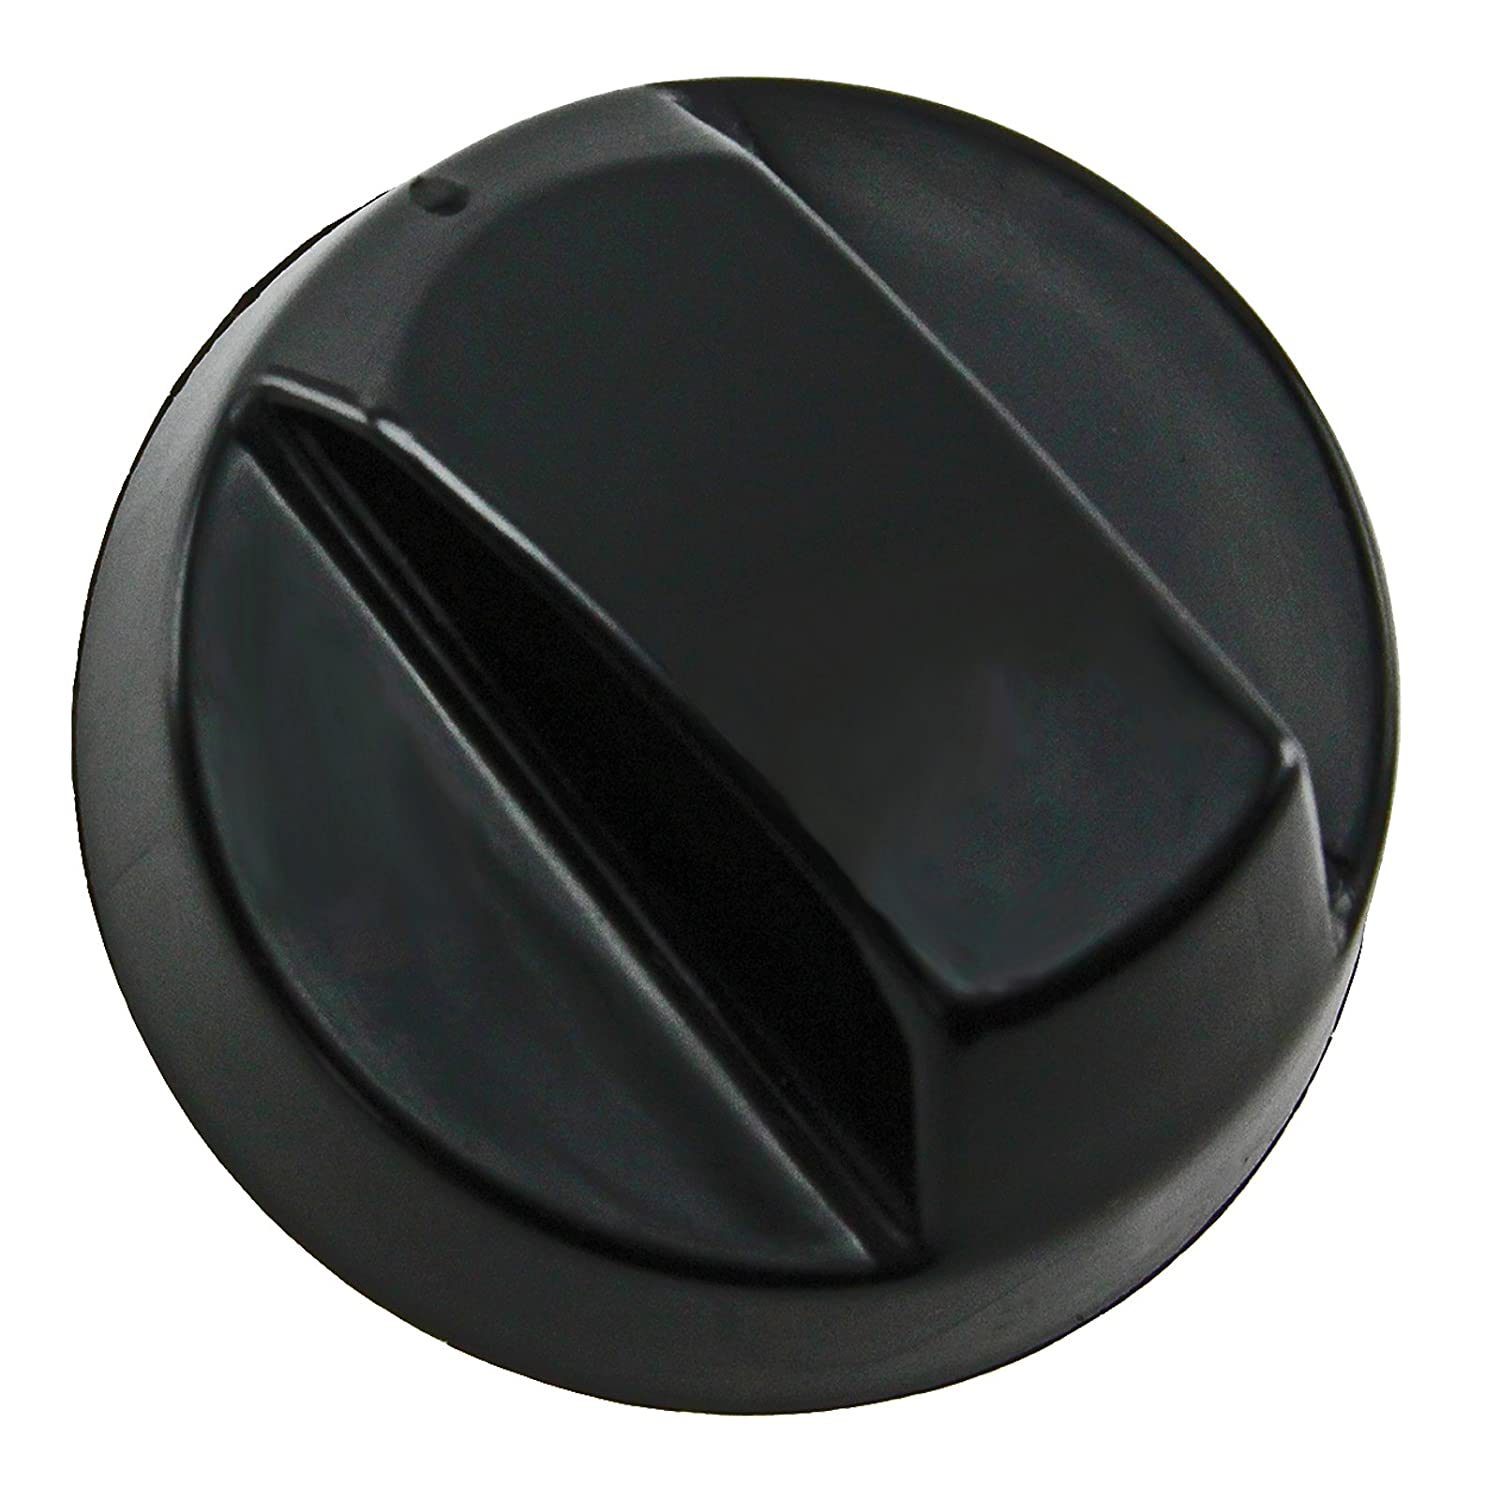 Spares2go Control Switch Knob for Caple Oven Cooker//Hobs Black, Pack of 4